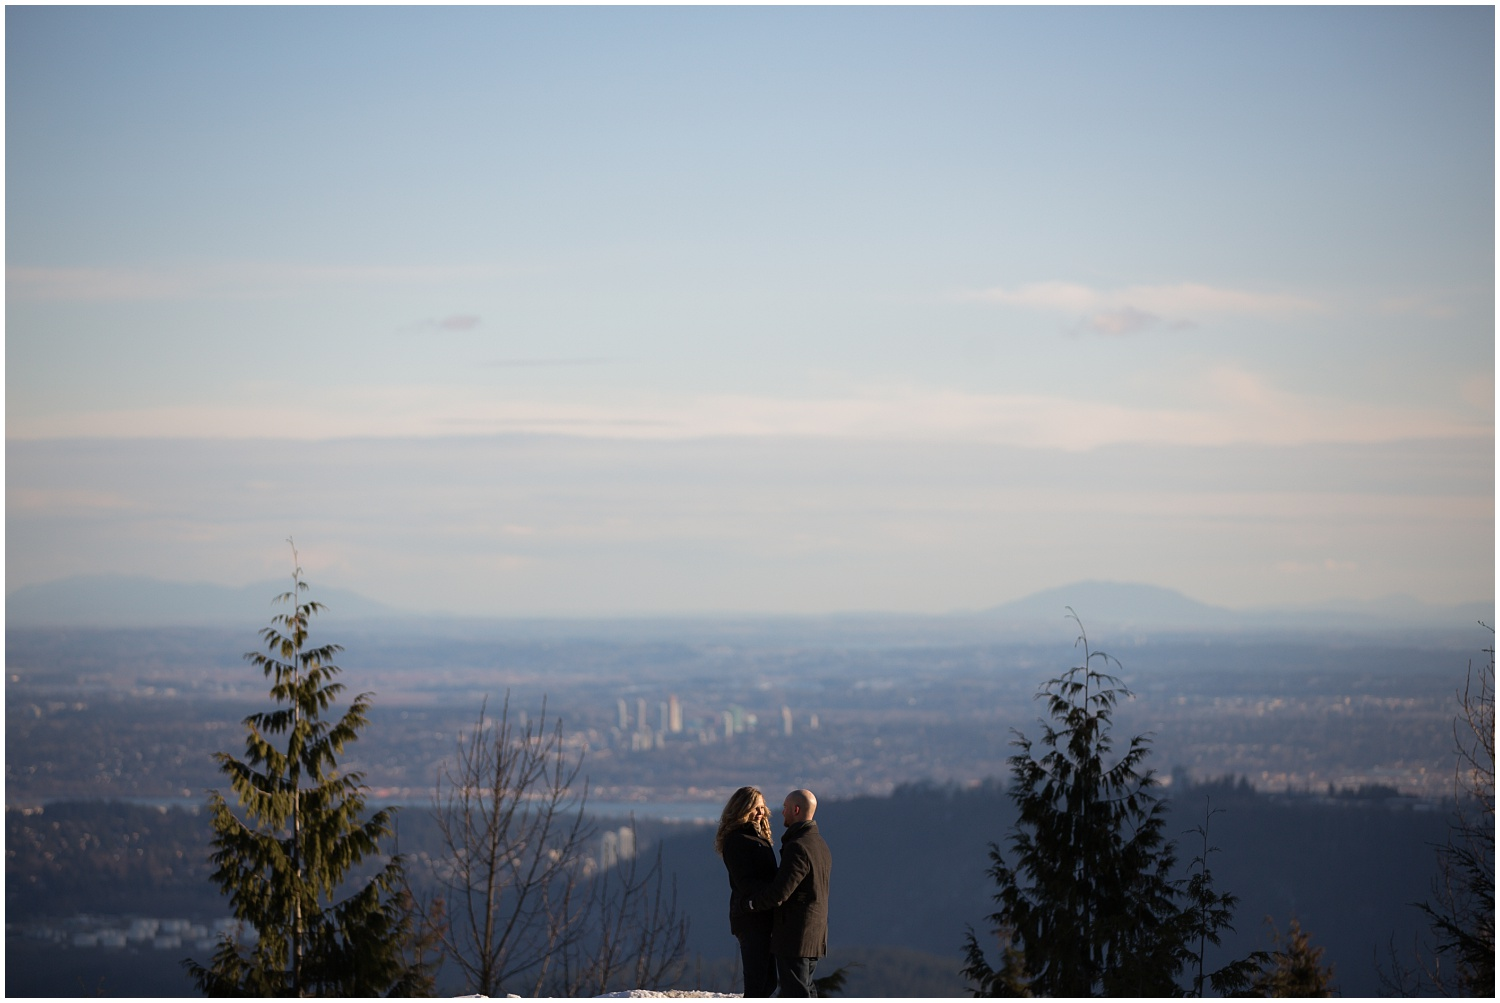 Amazing Day Photography - Langely Wedding Photographer - Snow Engagement Session - Mount Seymour Engagement - Winter Engagement Session - North Vancouver Engagement Session  (7).jpg